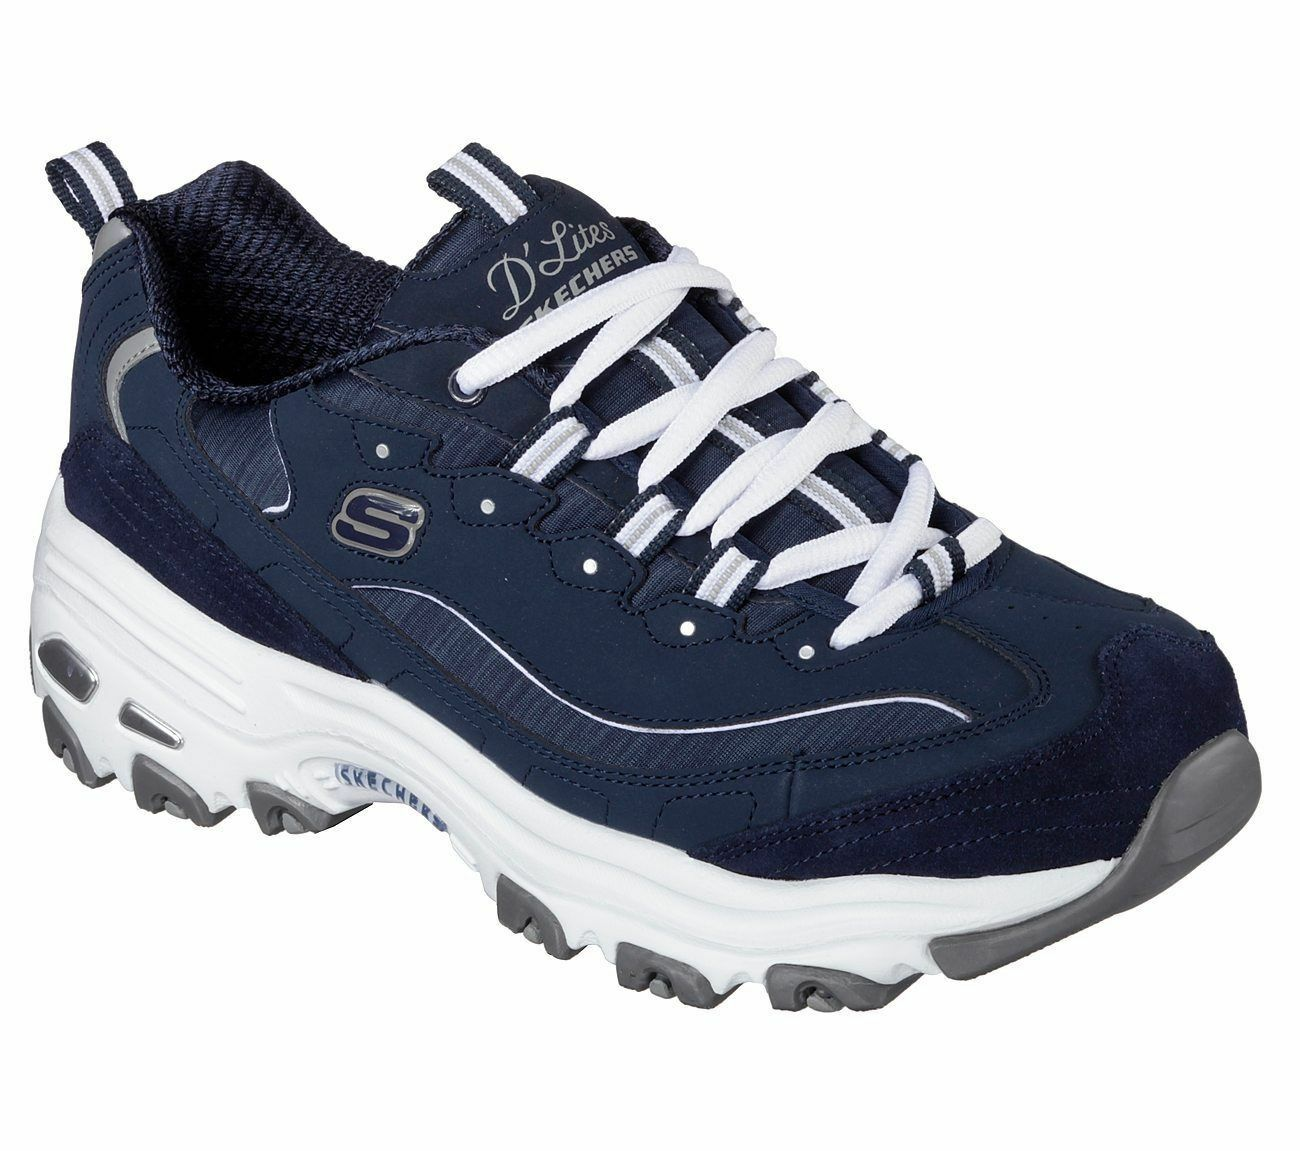 Skechers shoes Navy White Dlites 11936 NVW Women Casual Memory Foam Sneaker walk